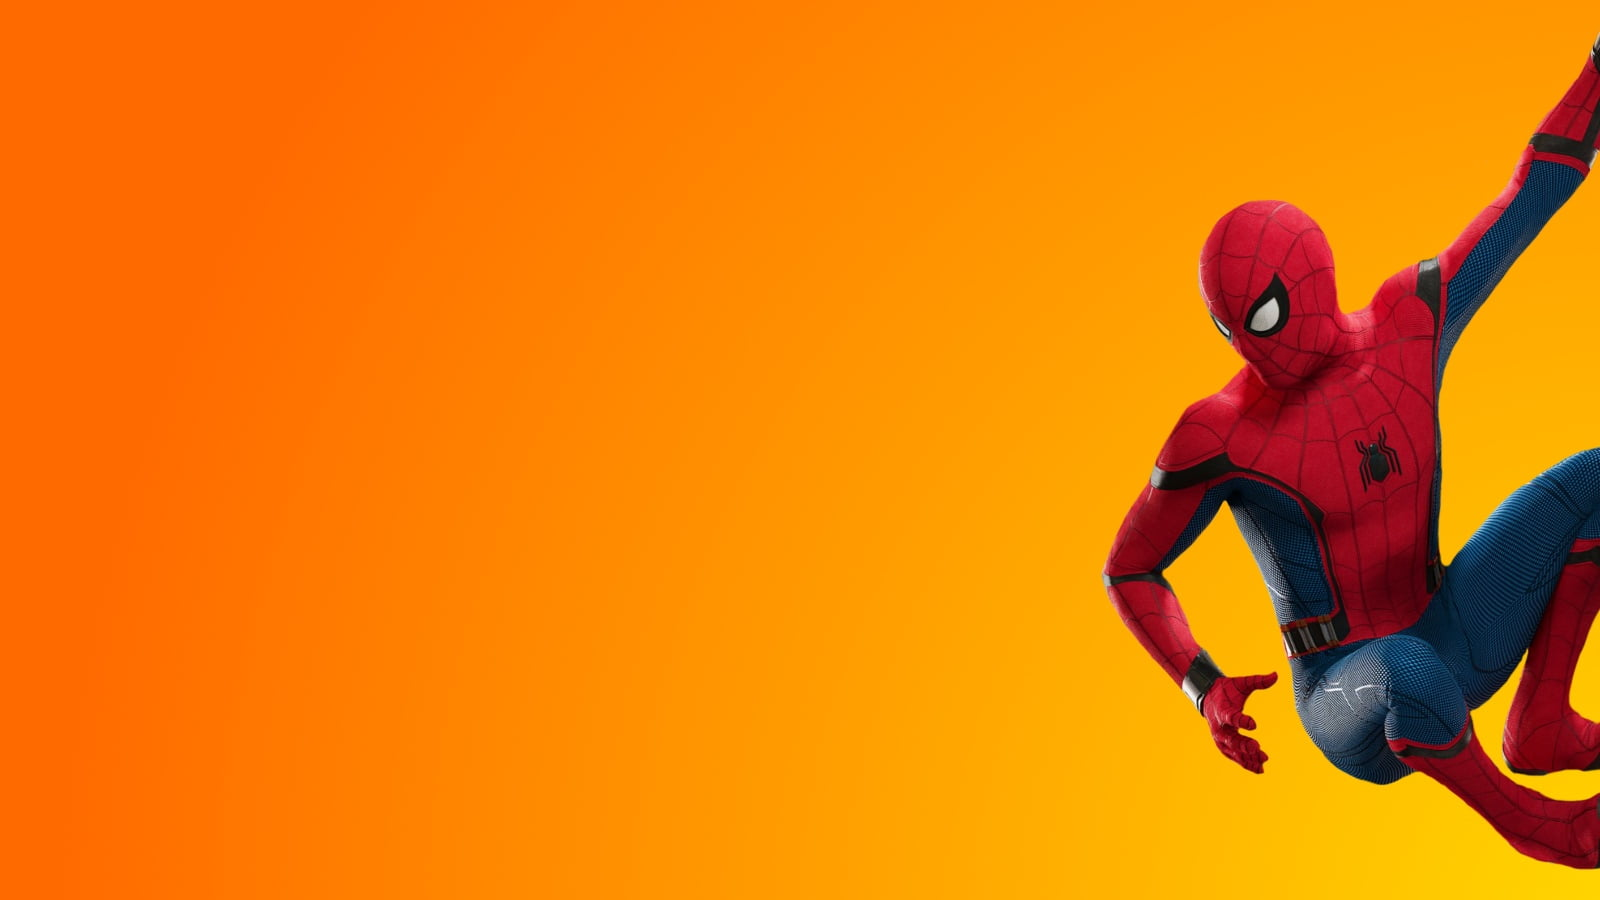 Here's every suit in Marvel's Spider-Man on PS4